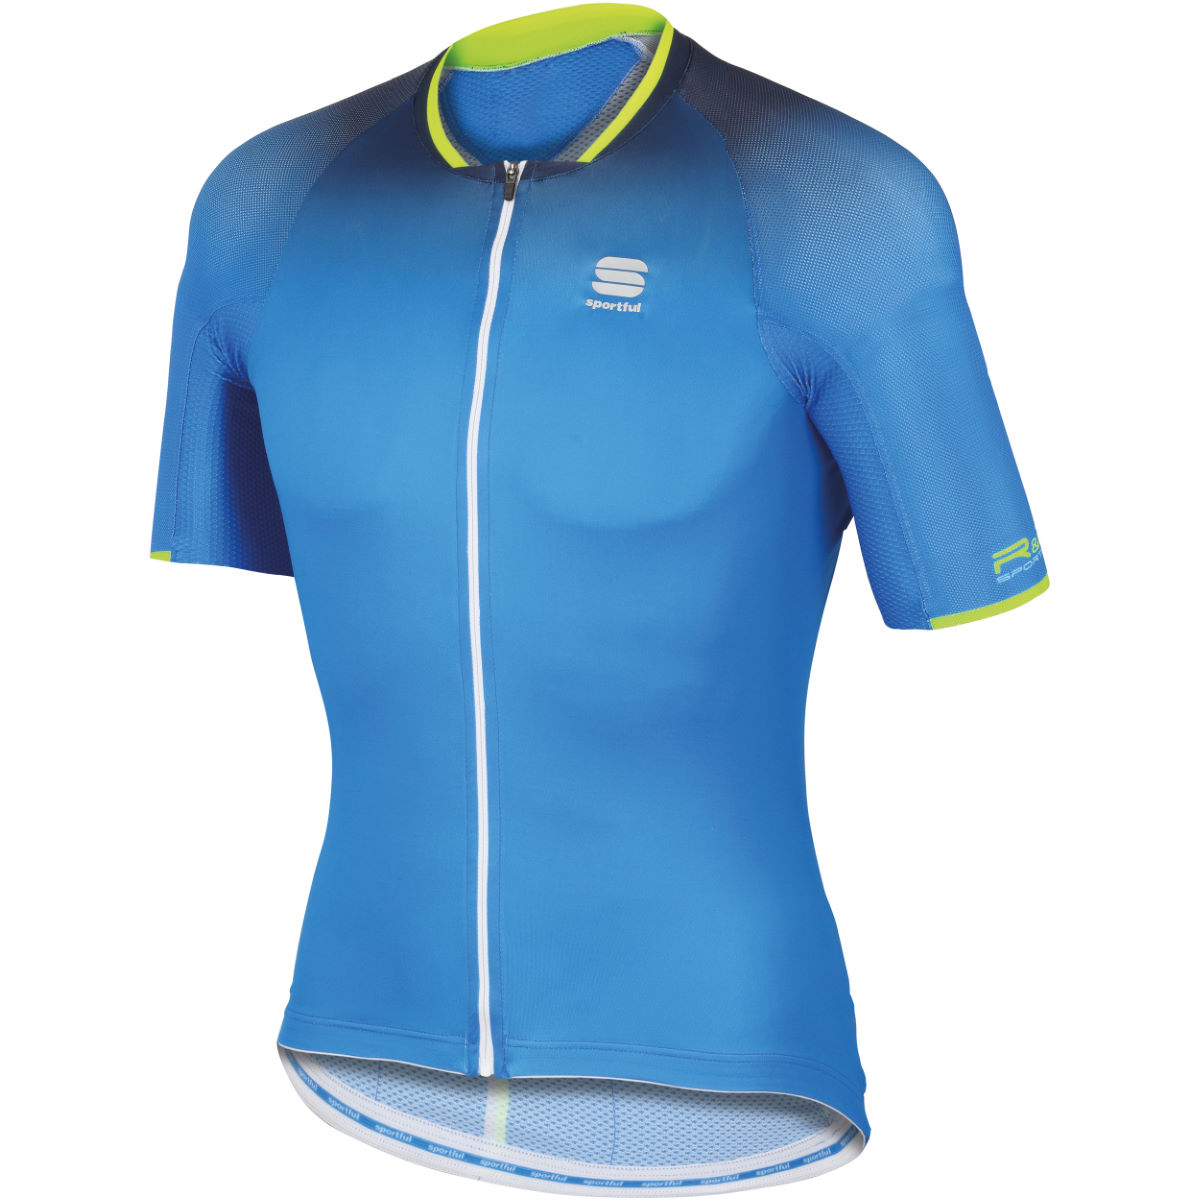 Sportful R & D Speed Skin Jersey   Short Sleeve Cycling Jerseys